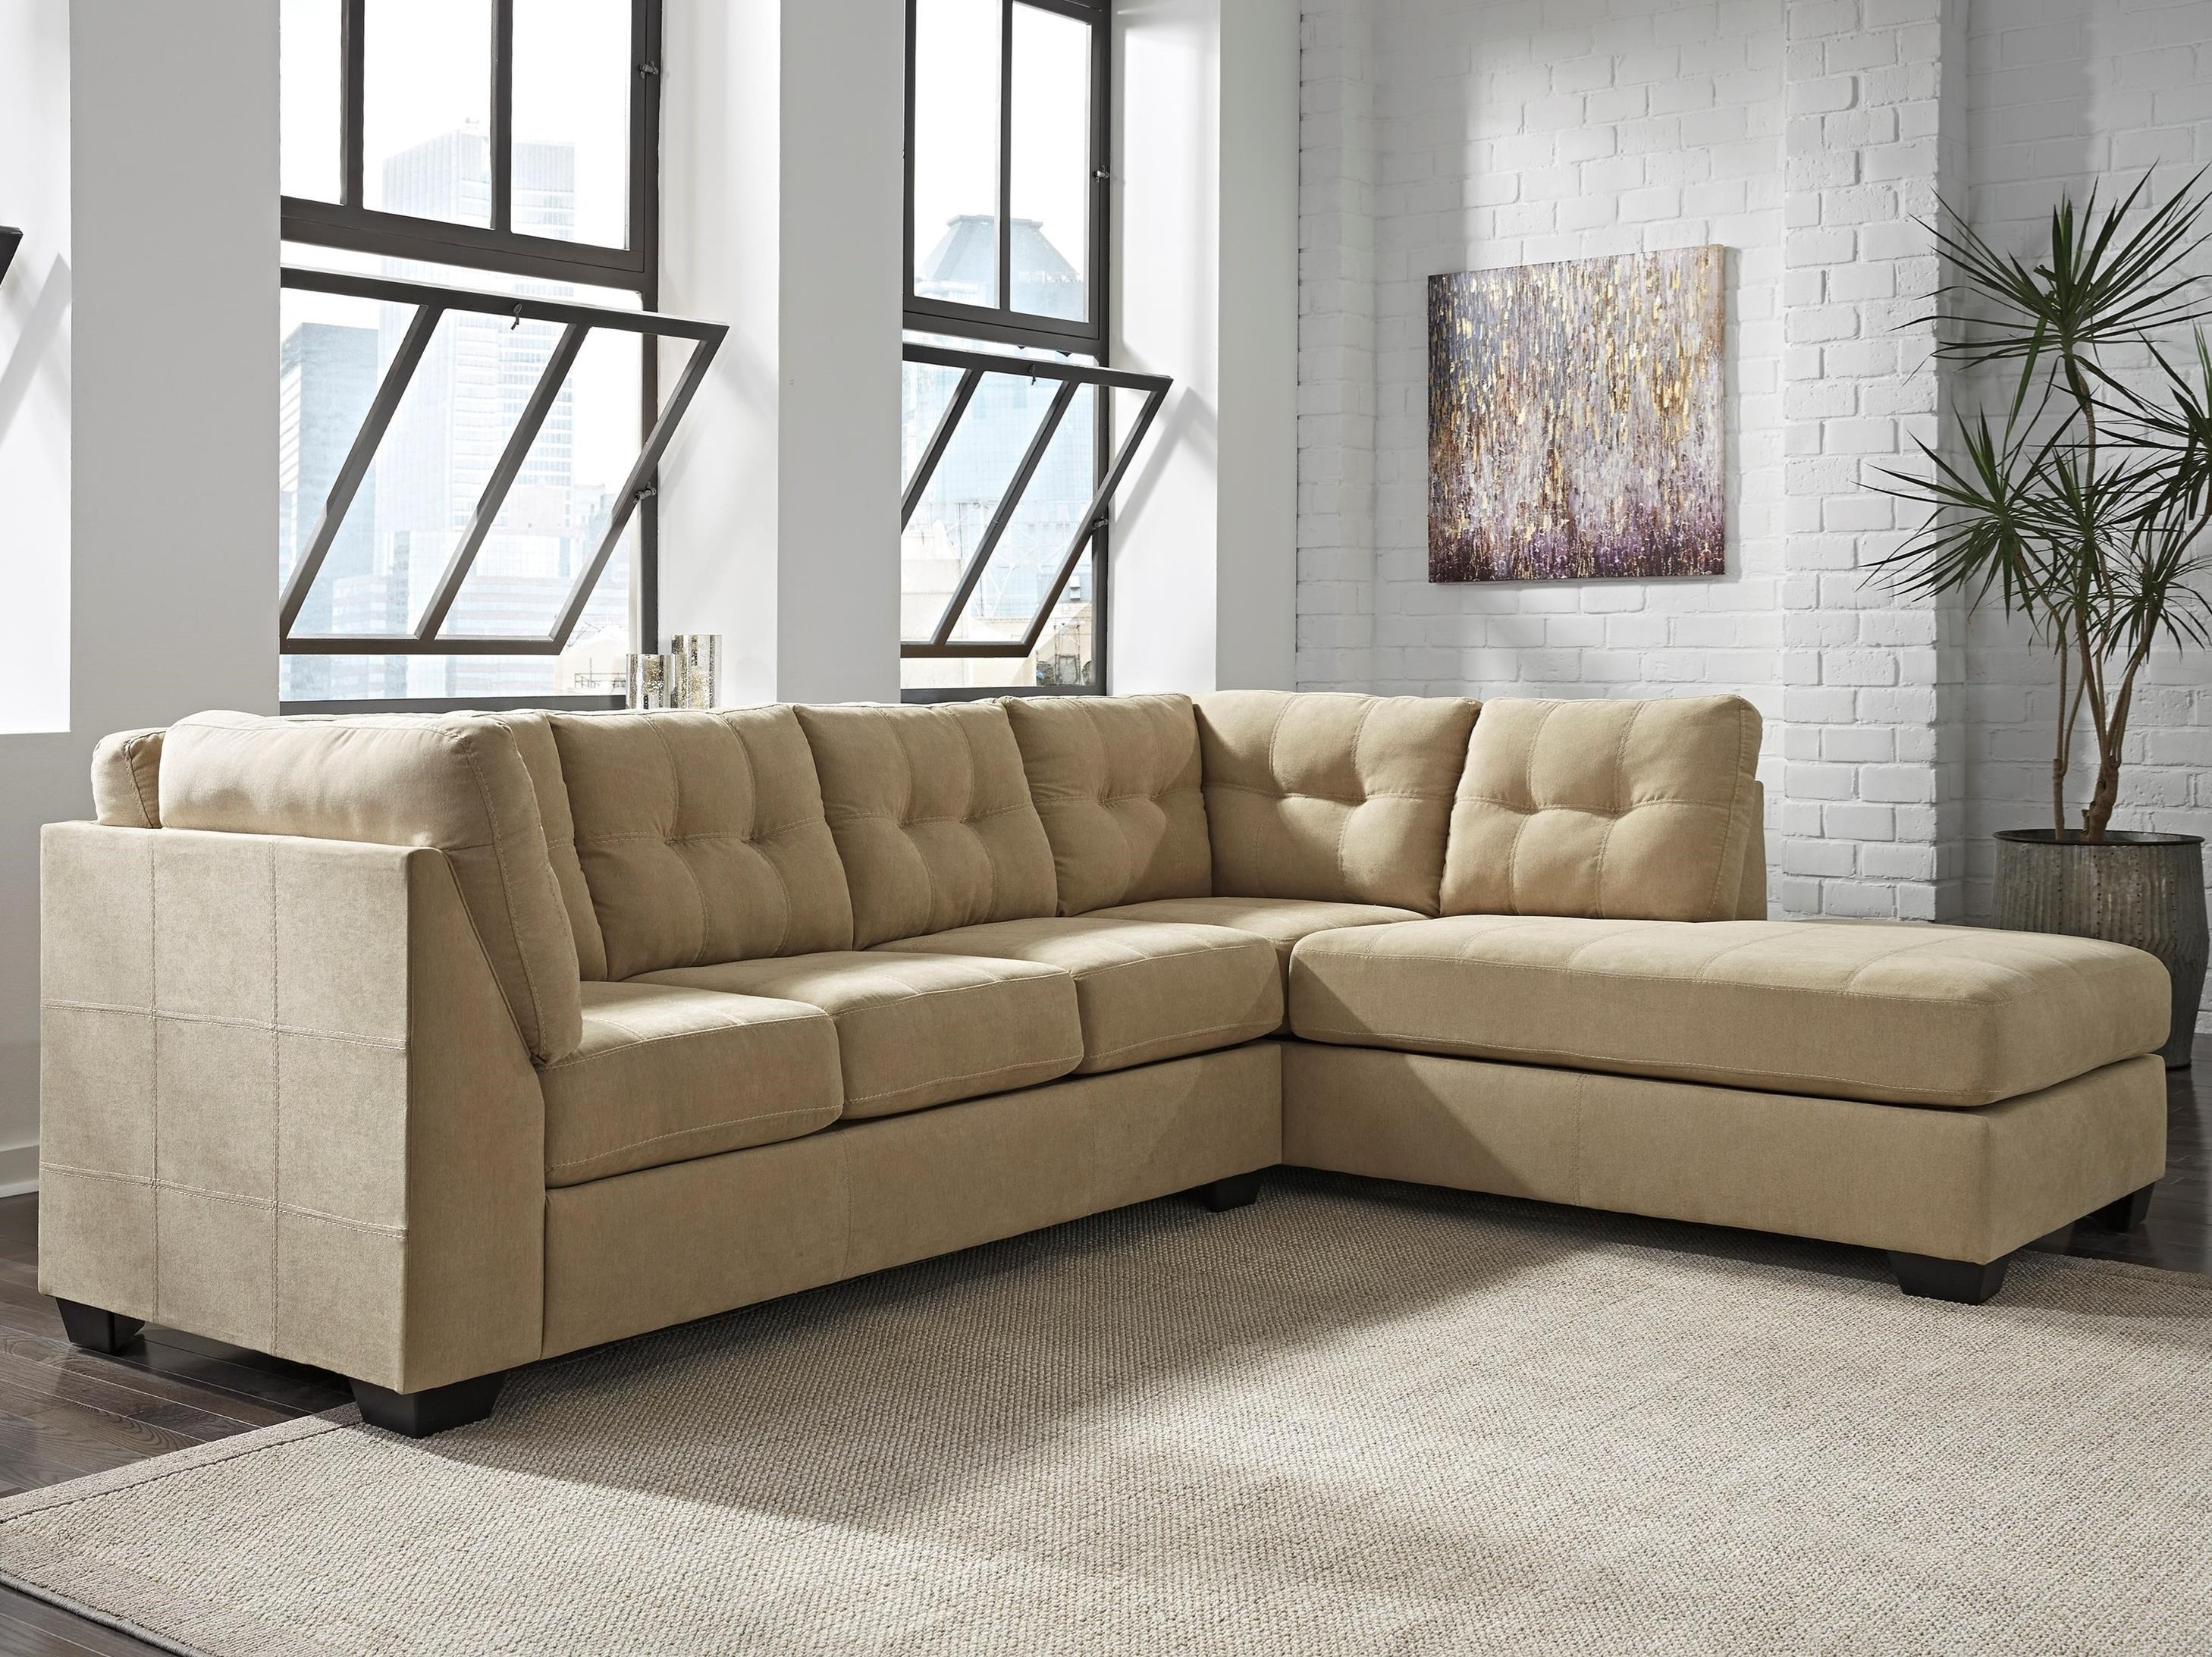 Amazing Benchcraft Maier   Cocoa 2 Piece Sectional With Right Chaise